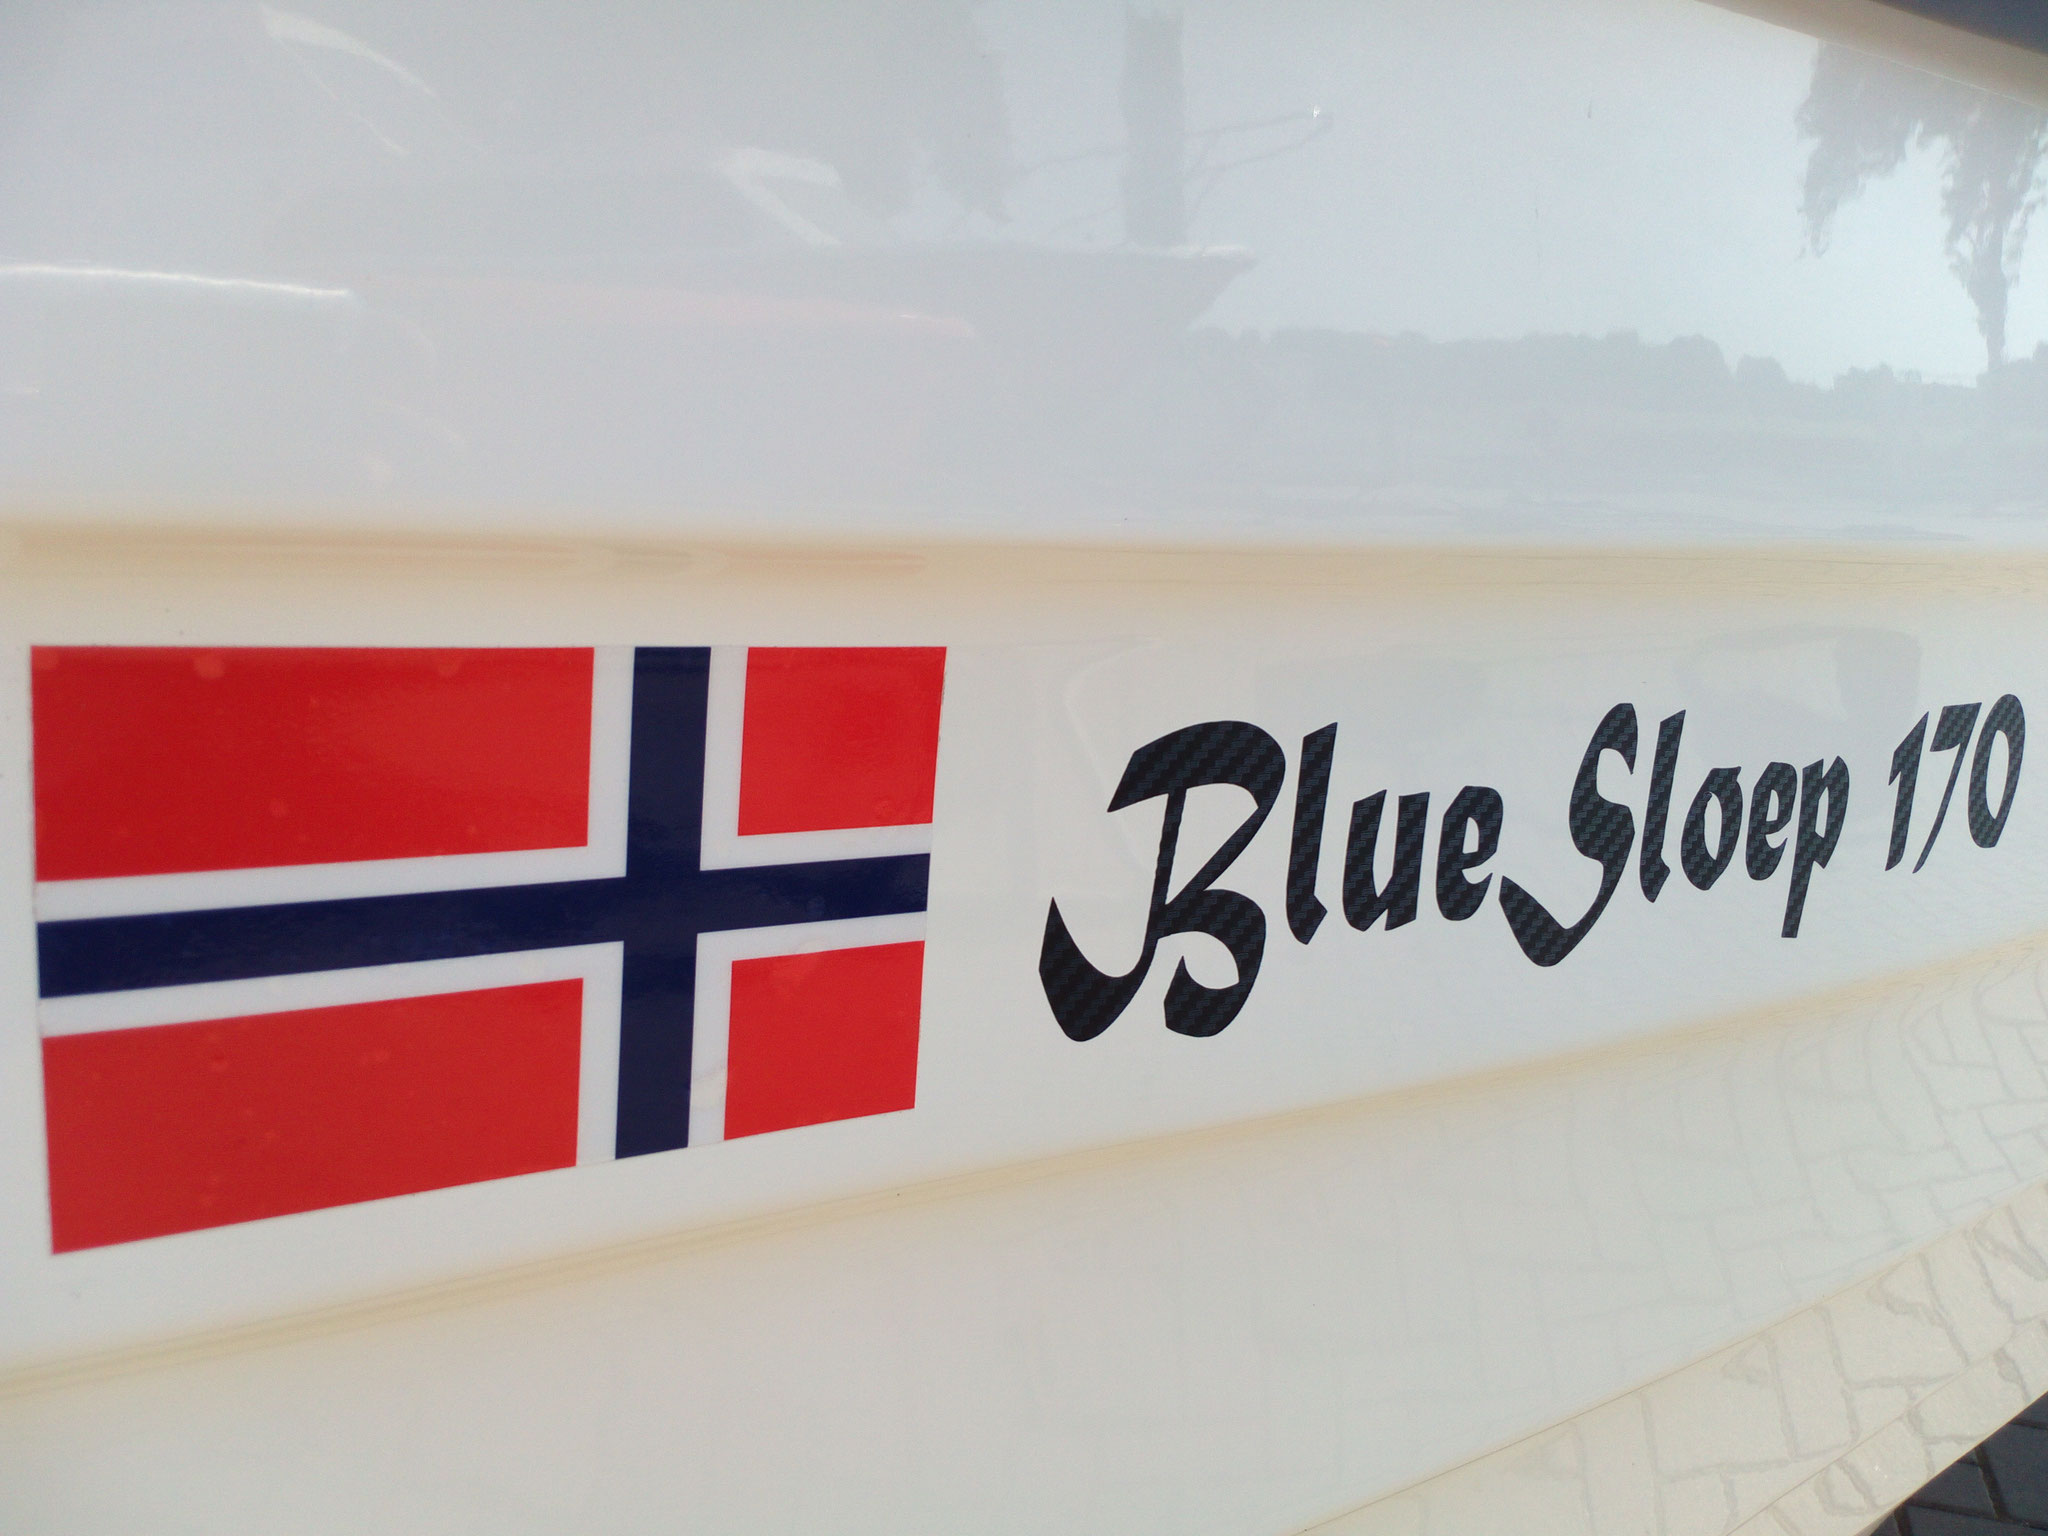 Blue Sloep 170 11